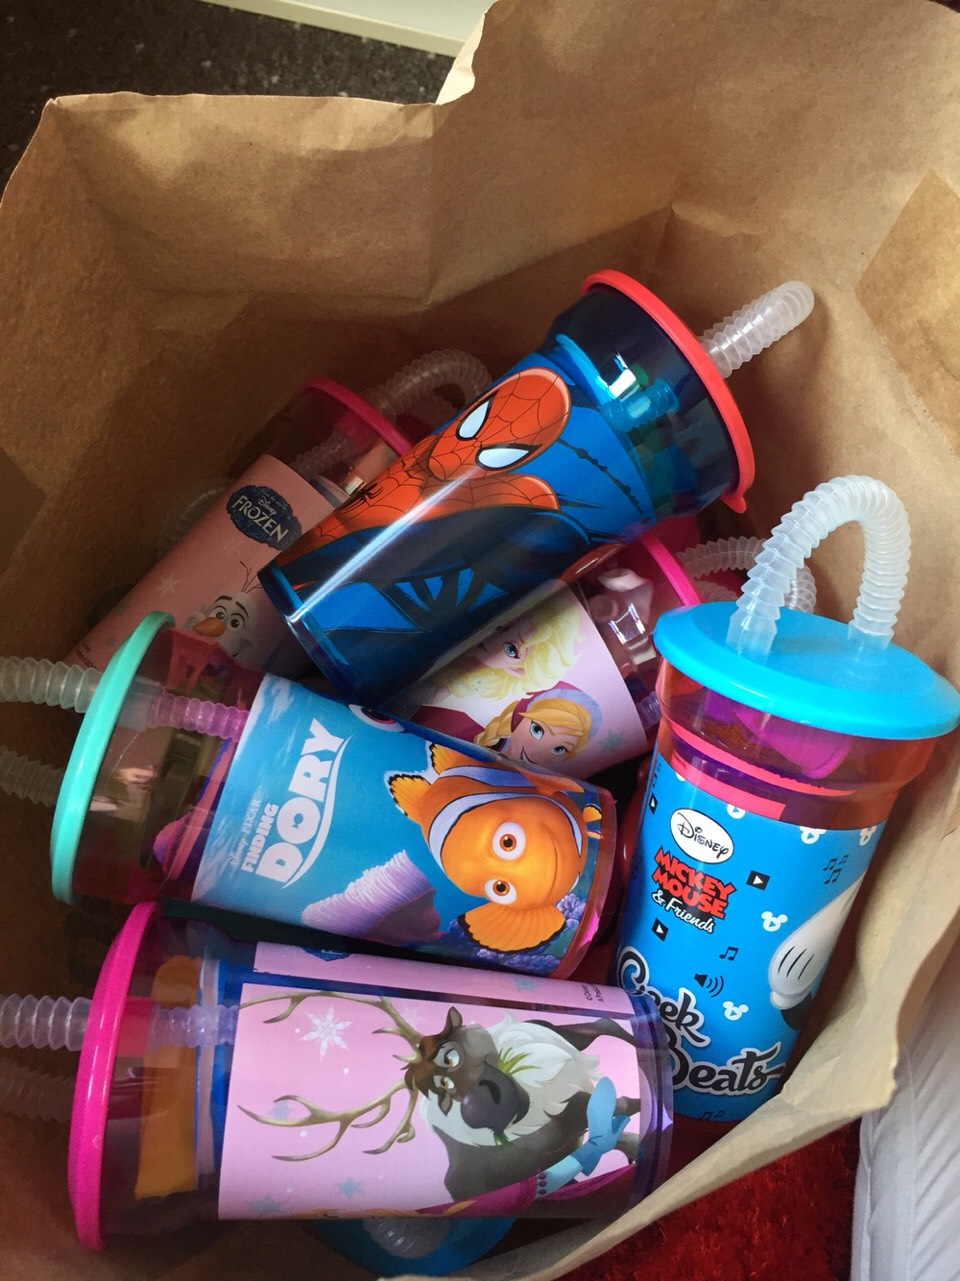 In the end..i made 16 in total.. the cost you ask? well.. the cups were from poundland = £16 (16cups) the sweets were also all from poundland = 2x10 packof choccy dips = £2 2xharibo packs =£2 balloons(pack of 30) = £1 pack of 150 stickers = £1 2x7 pack of kitkat = £2 TOTAL = £25 for 16!